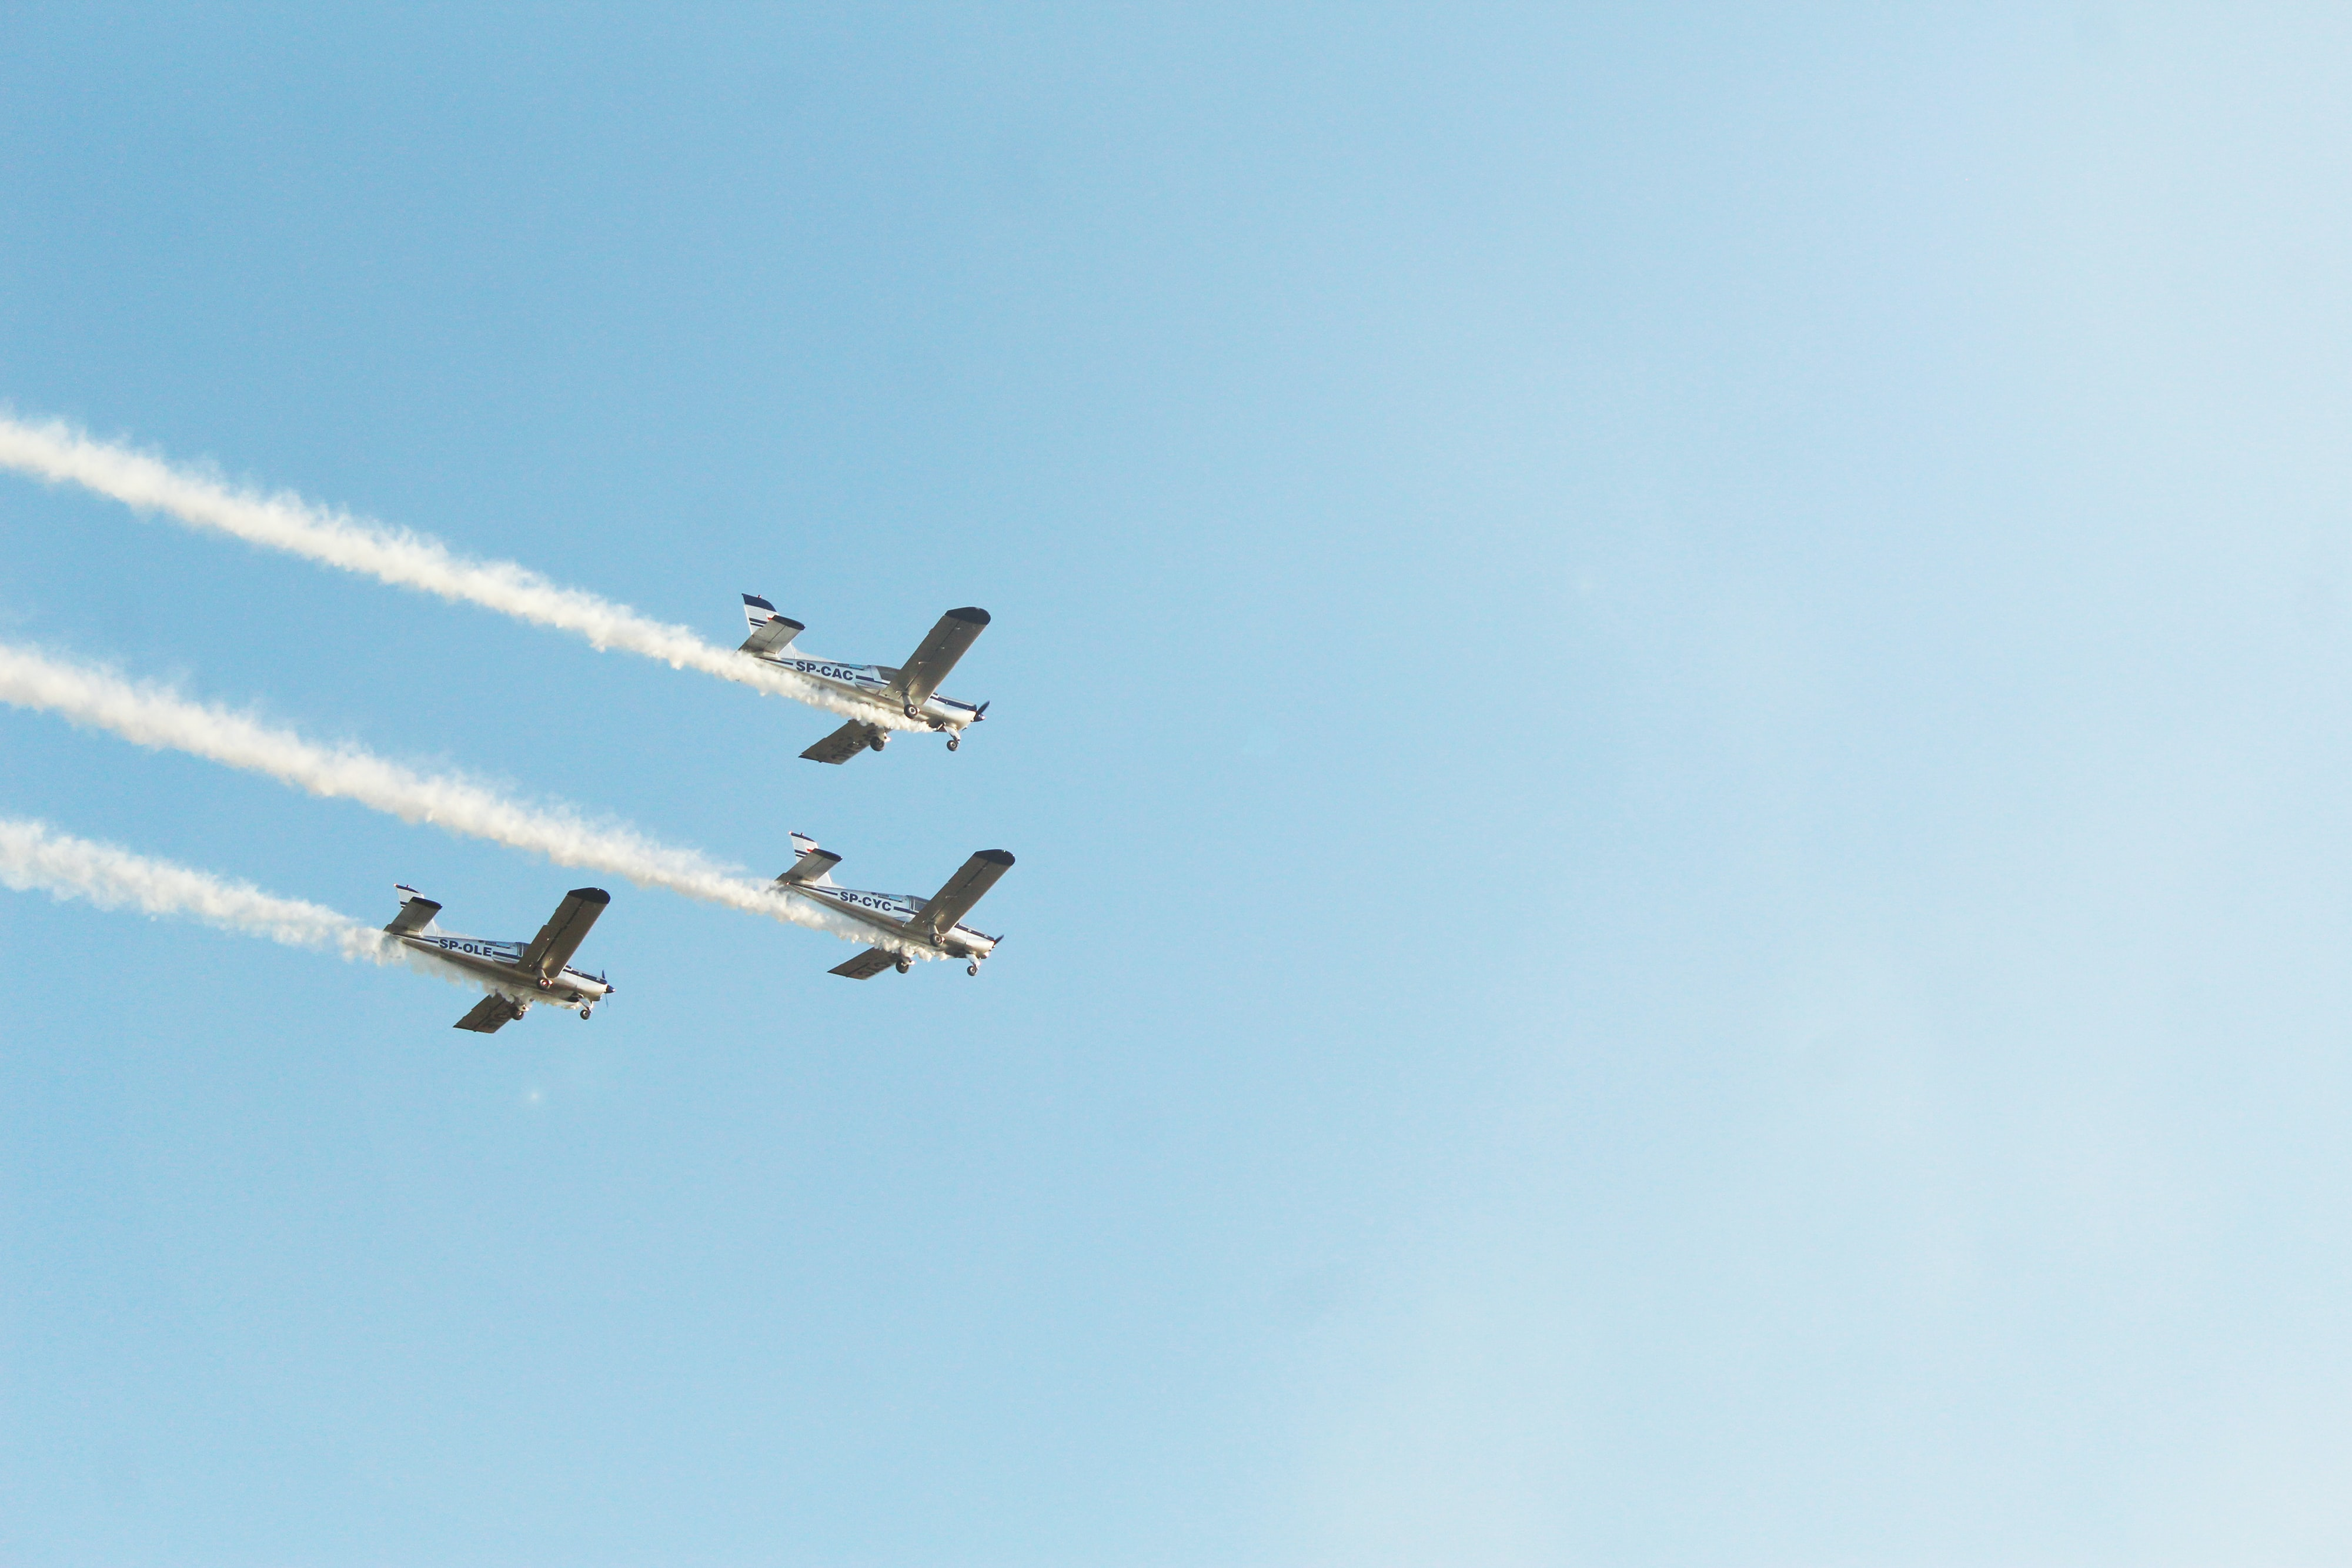 three gray jets flying during daytime